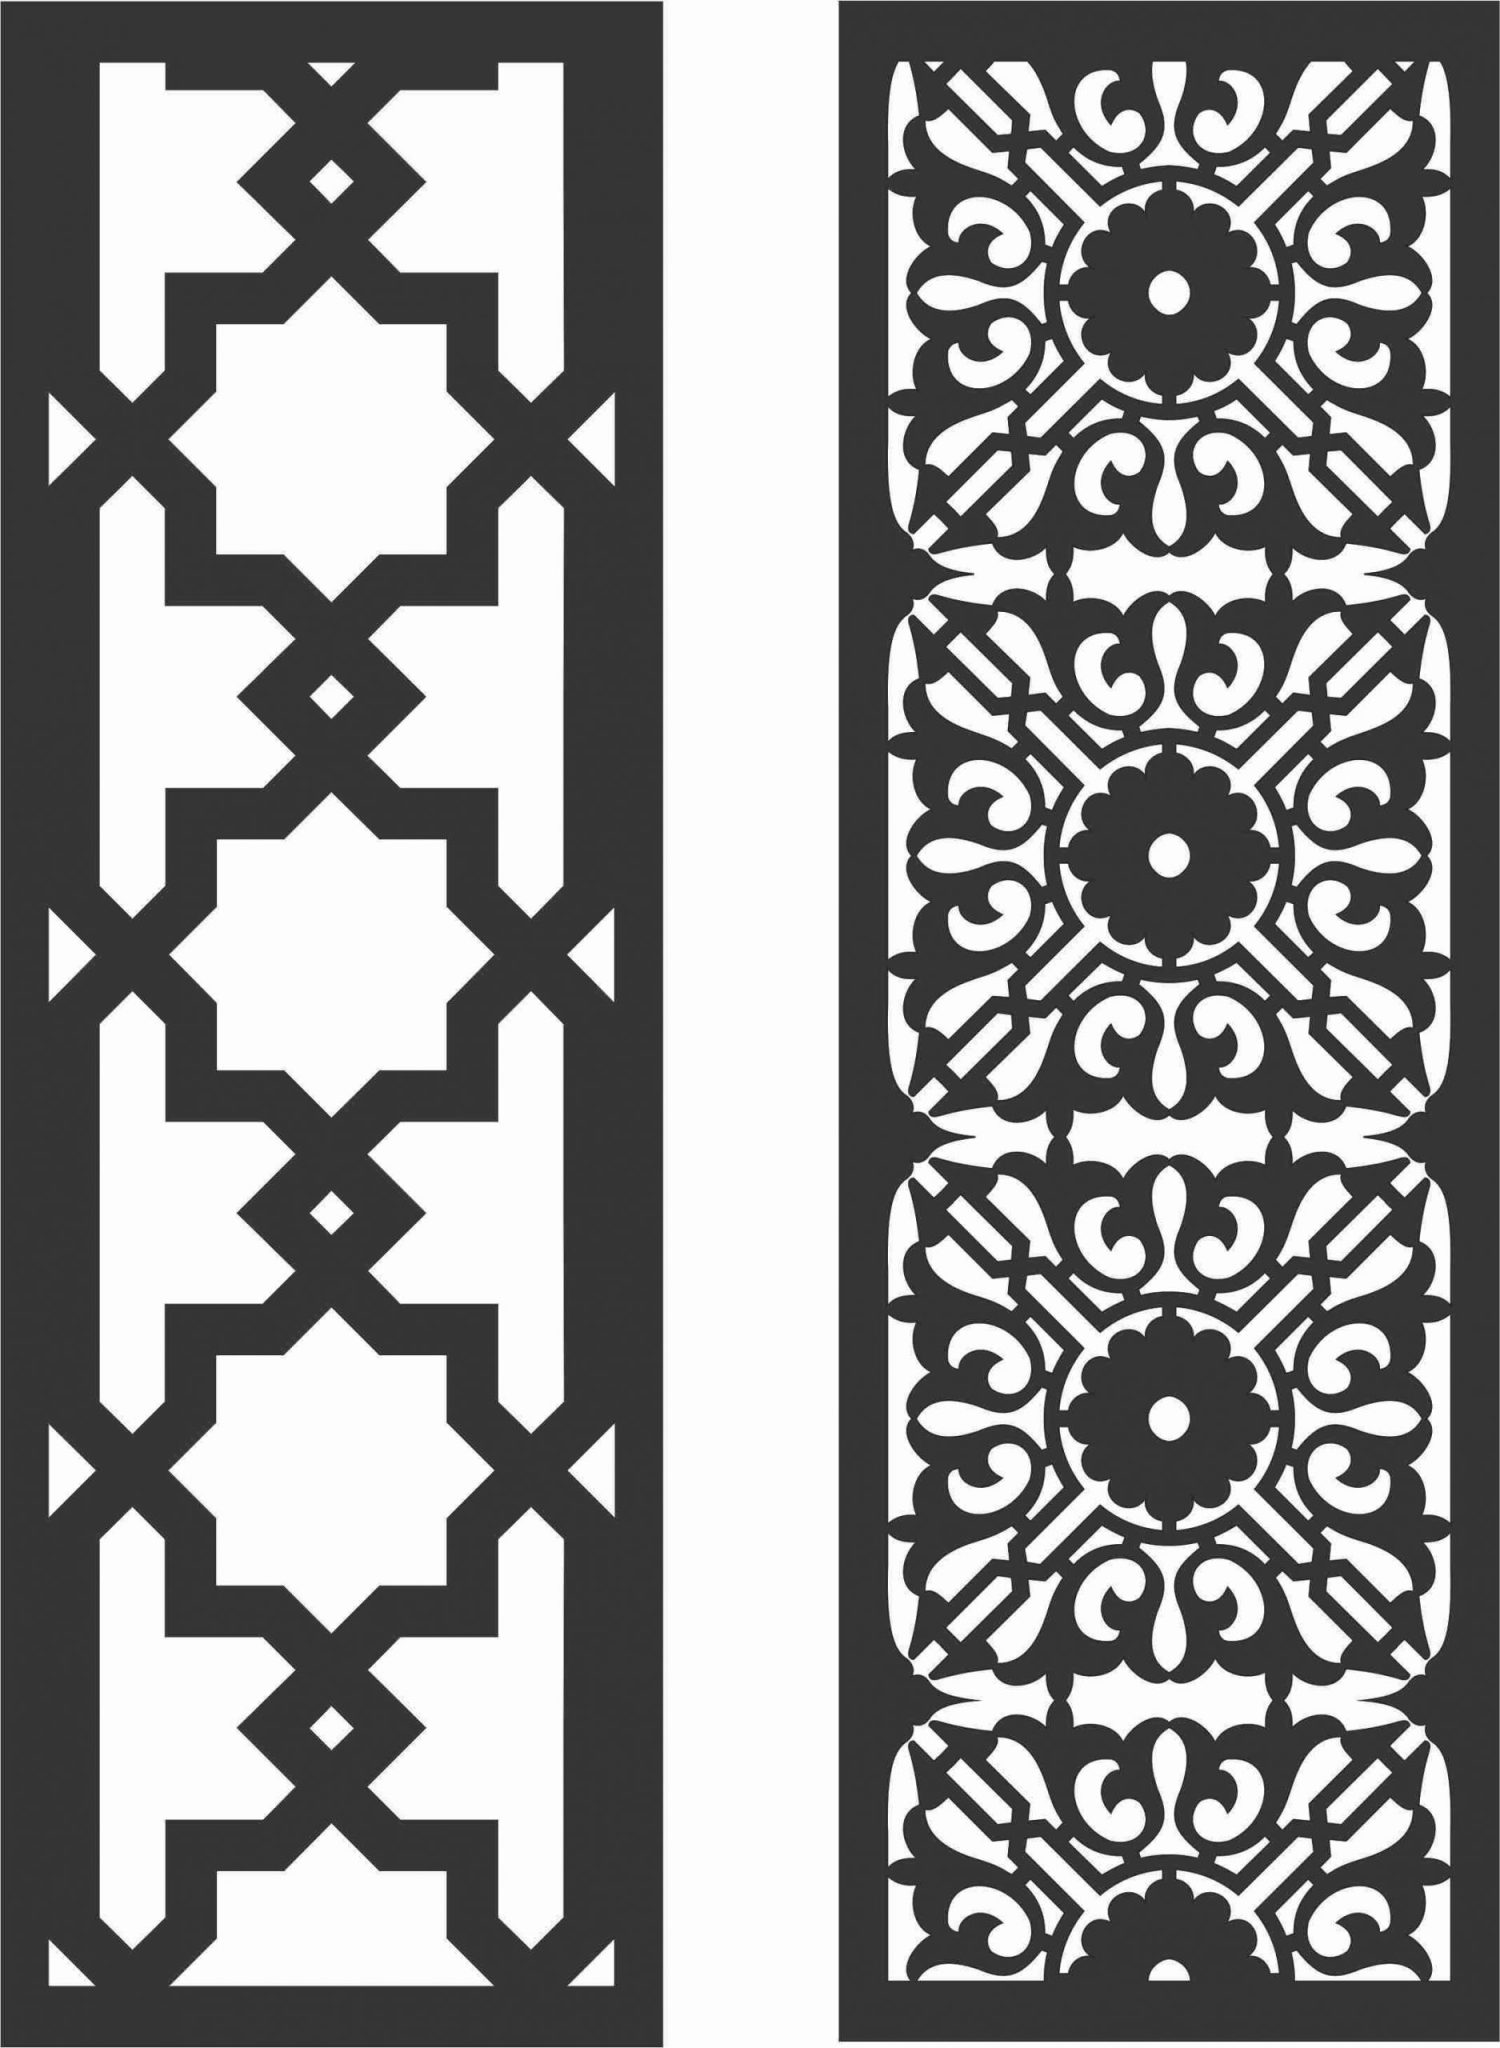 Floral Screen Patterns Design 46 Free DXF File